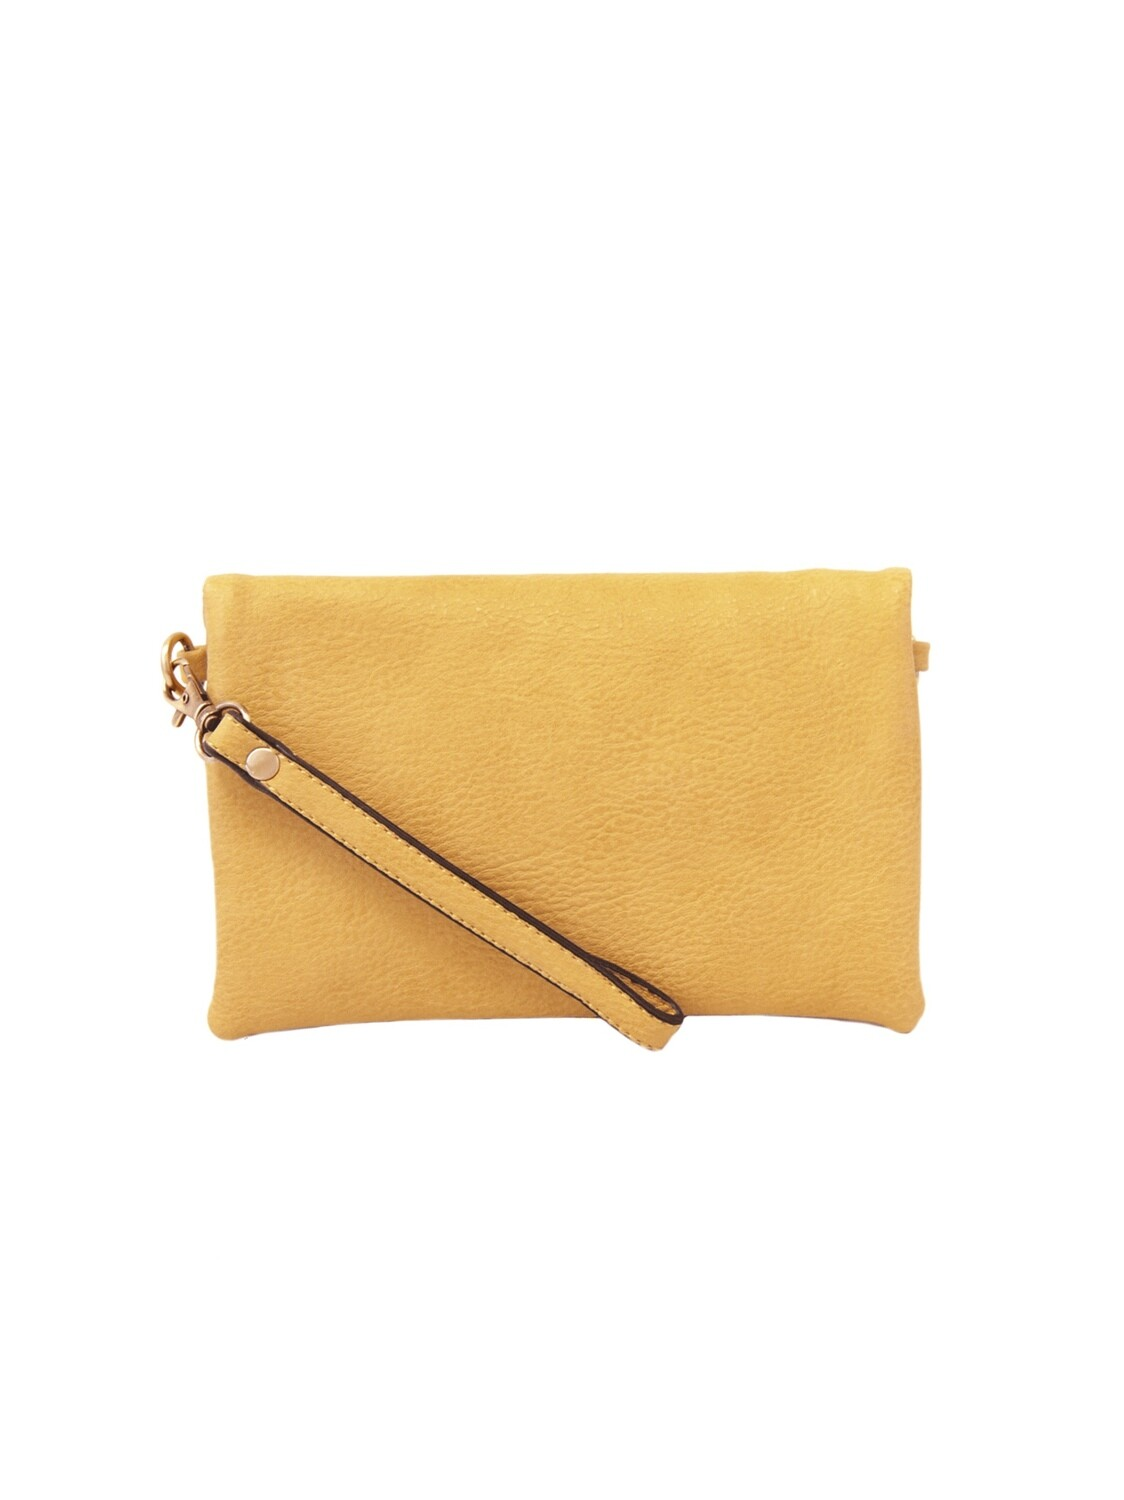 New Kate Crossbody Clutch Dijon JA8019-16